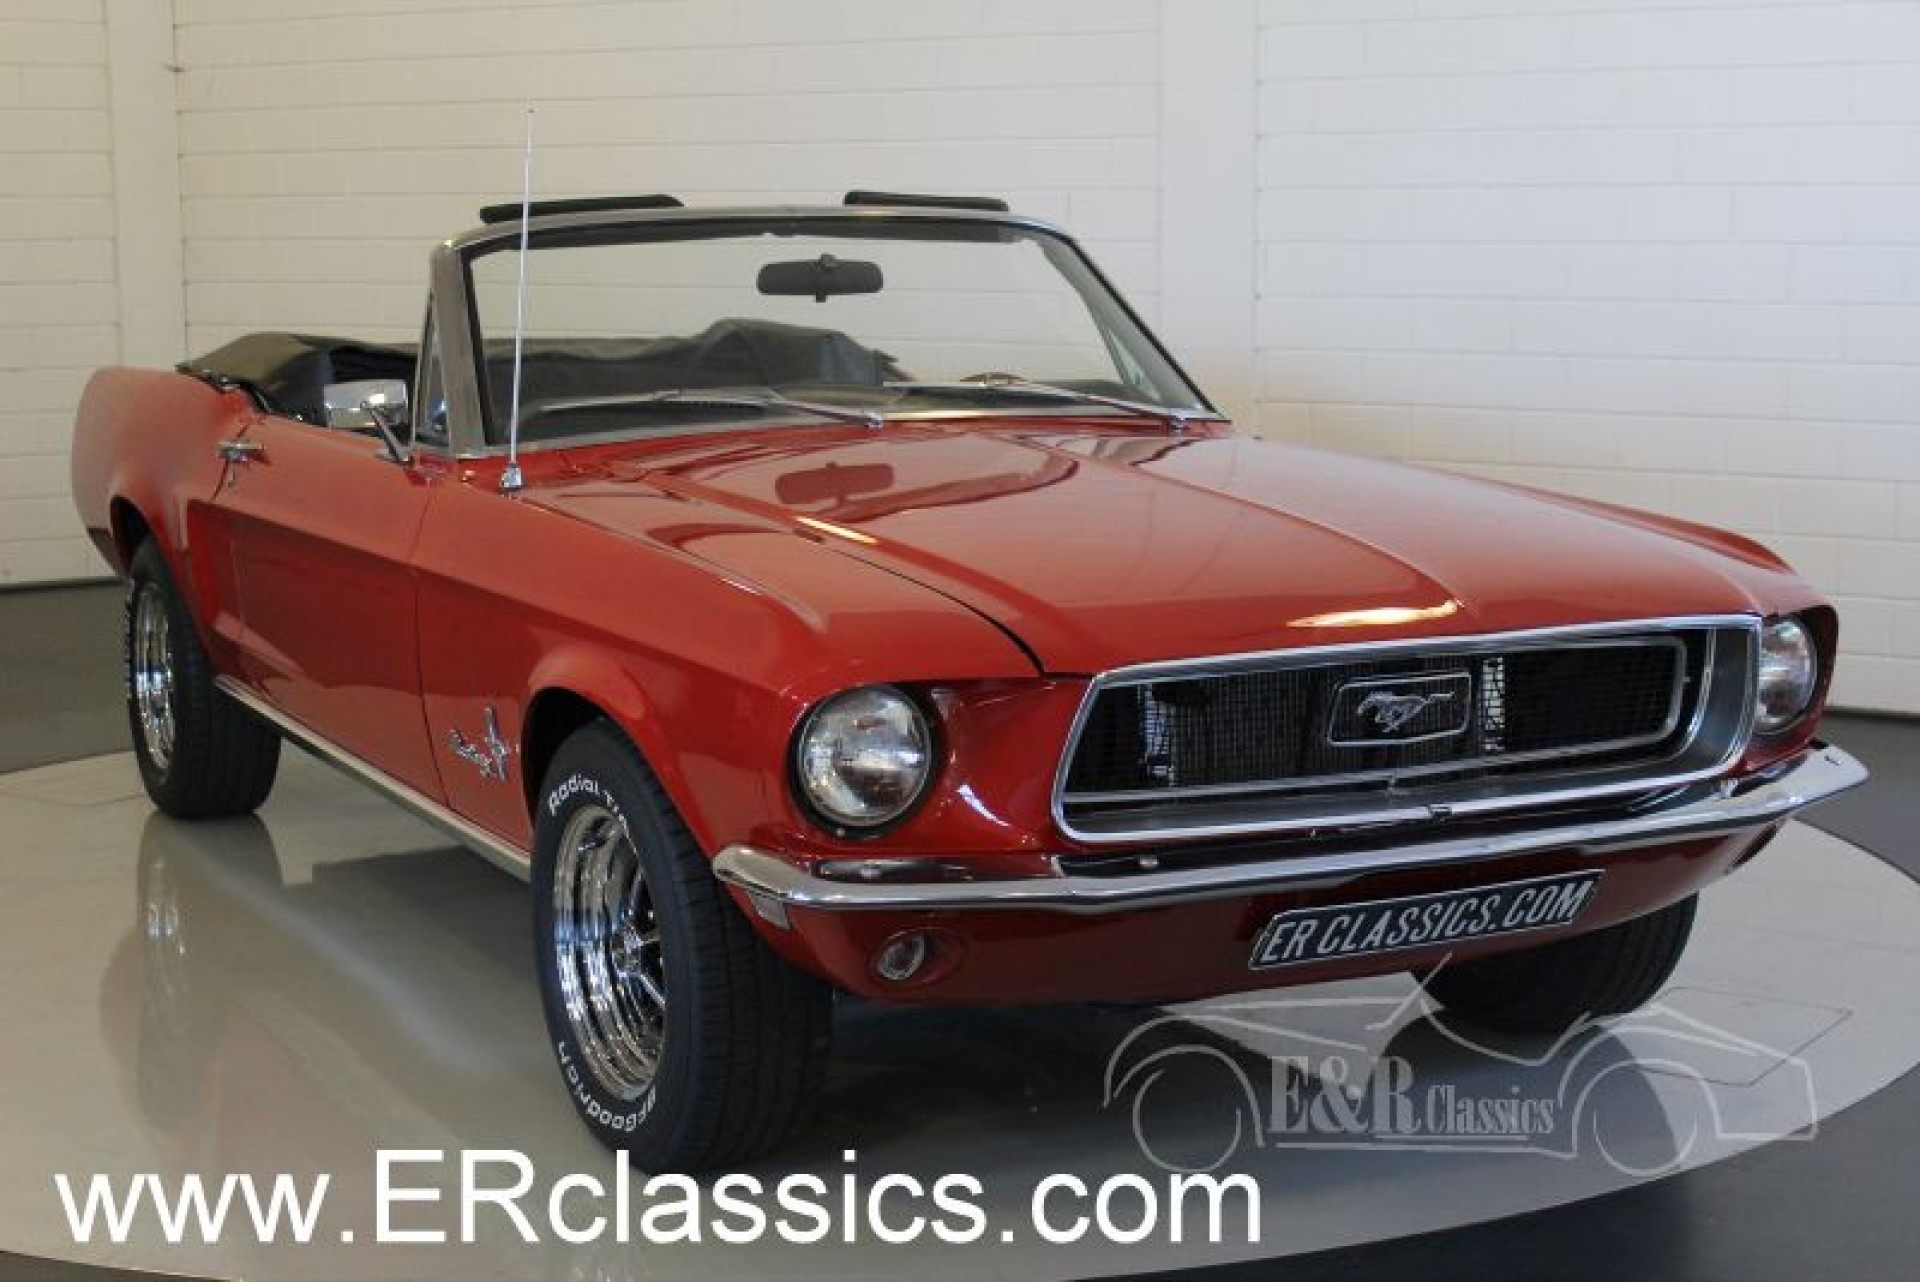 vinyl pinpoint htm photos mus mustang p a email window convertible friend more glass ford w top